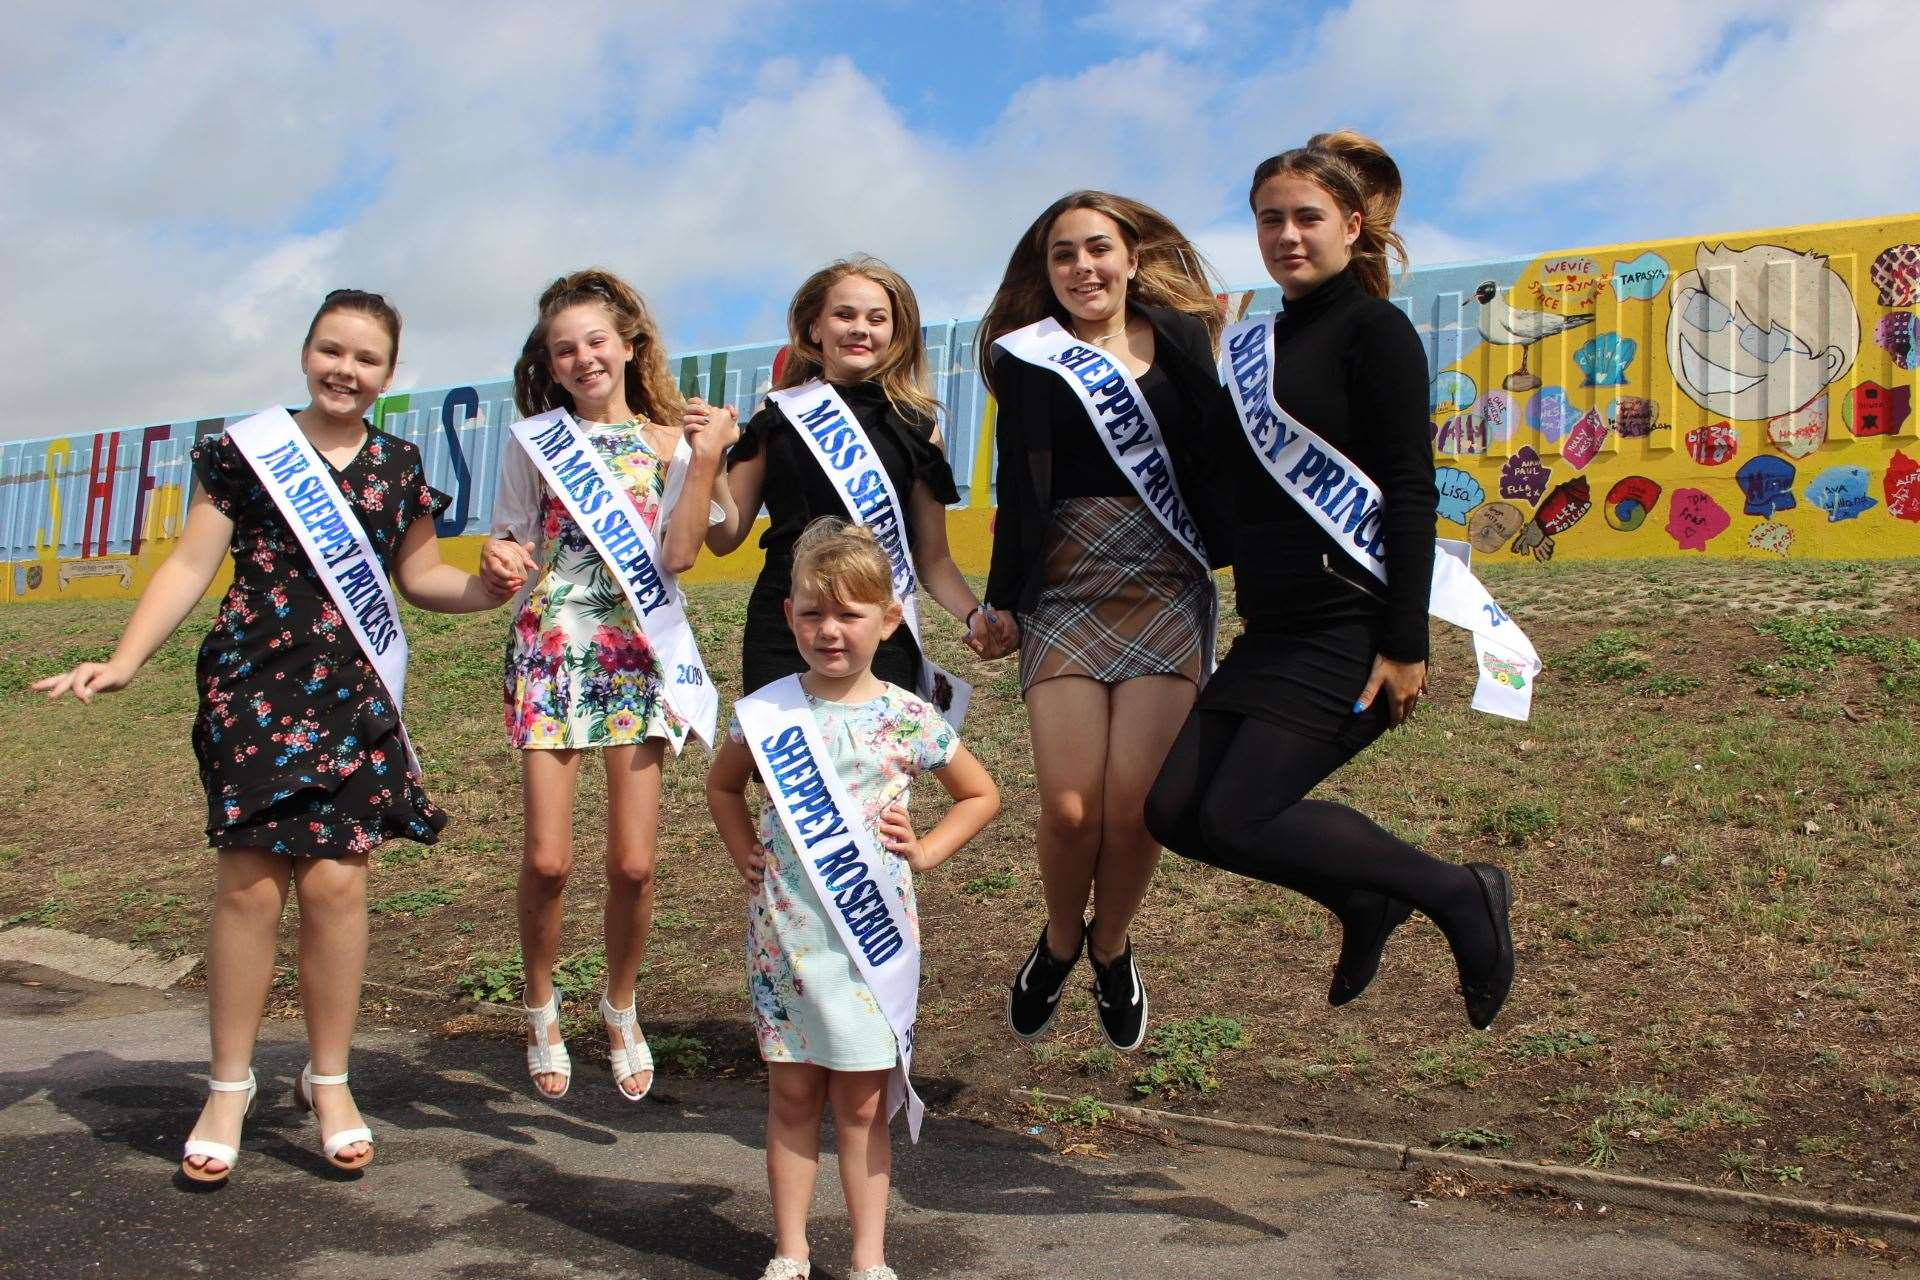 Sheppey carnival girls jumping for joy as they prepare for their big parade on Saturday. From the left, Lois Kidd, 10, Keira Collins-Kiazia, 13, carnival queen Melody Jackson, 15, Darcey Kidd, 14, and Paige Heaton, 14, with Sheppey Rosebud Evie Bowes, 5, in the front. Picture: John Nurden (15016559)